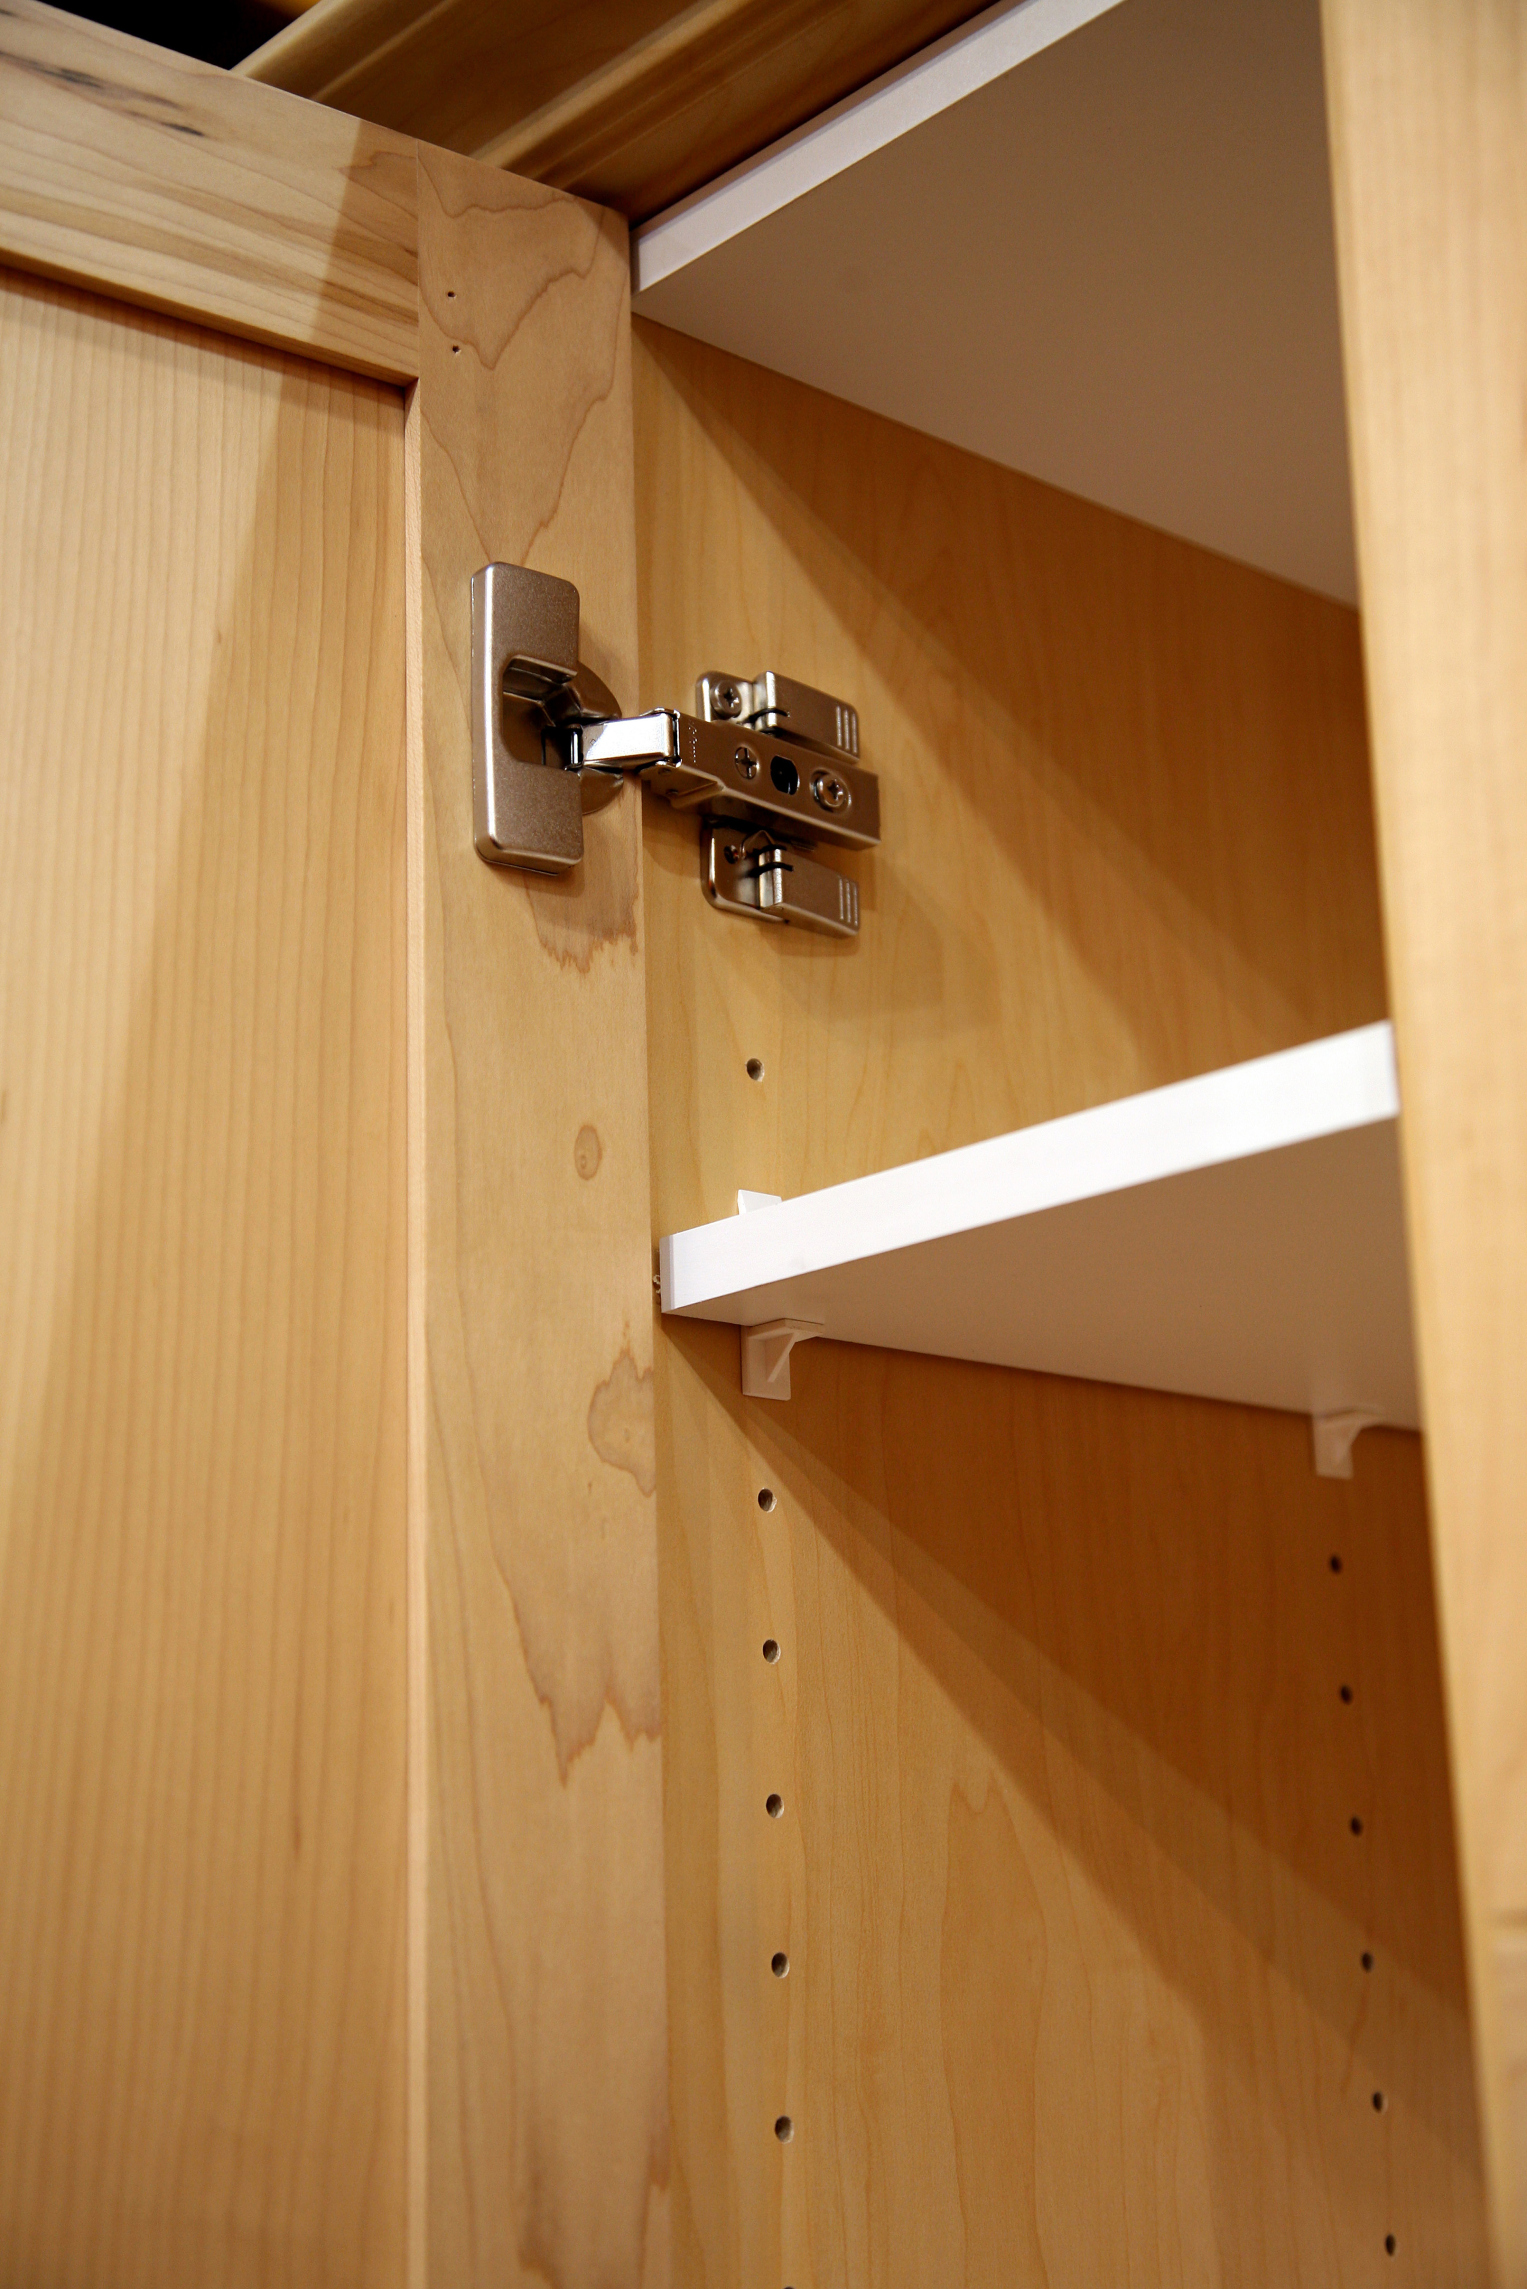 How To Build A Cabinet With Shelf Pegs Ehow